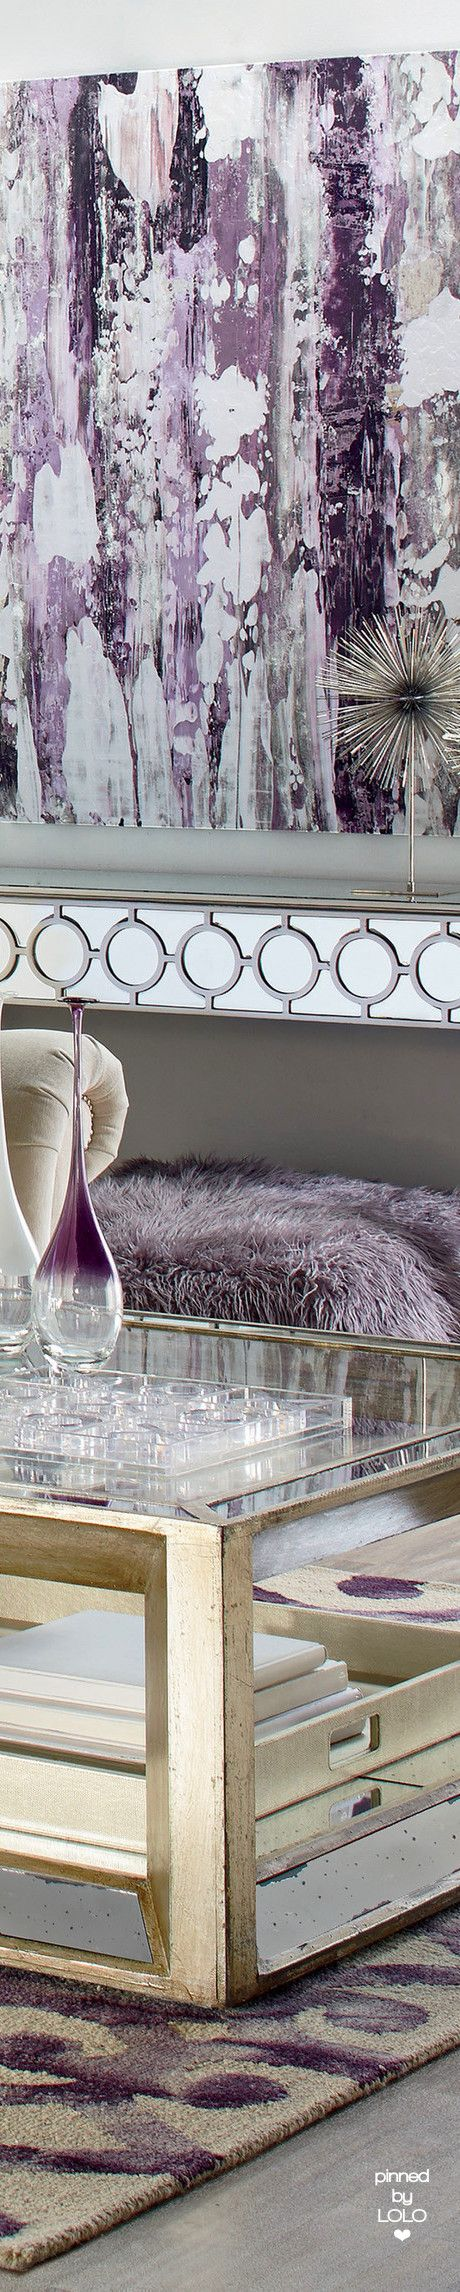 luxury modern furniture, silver, purple. home accents DesignNashville.com